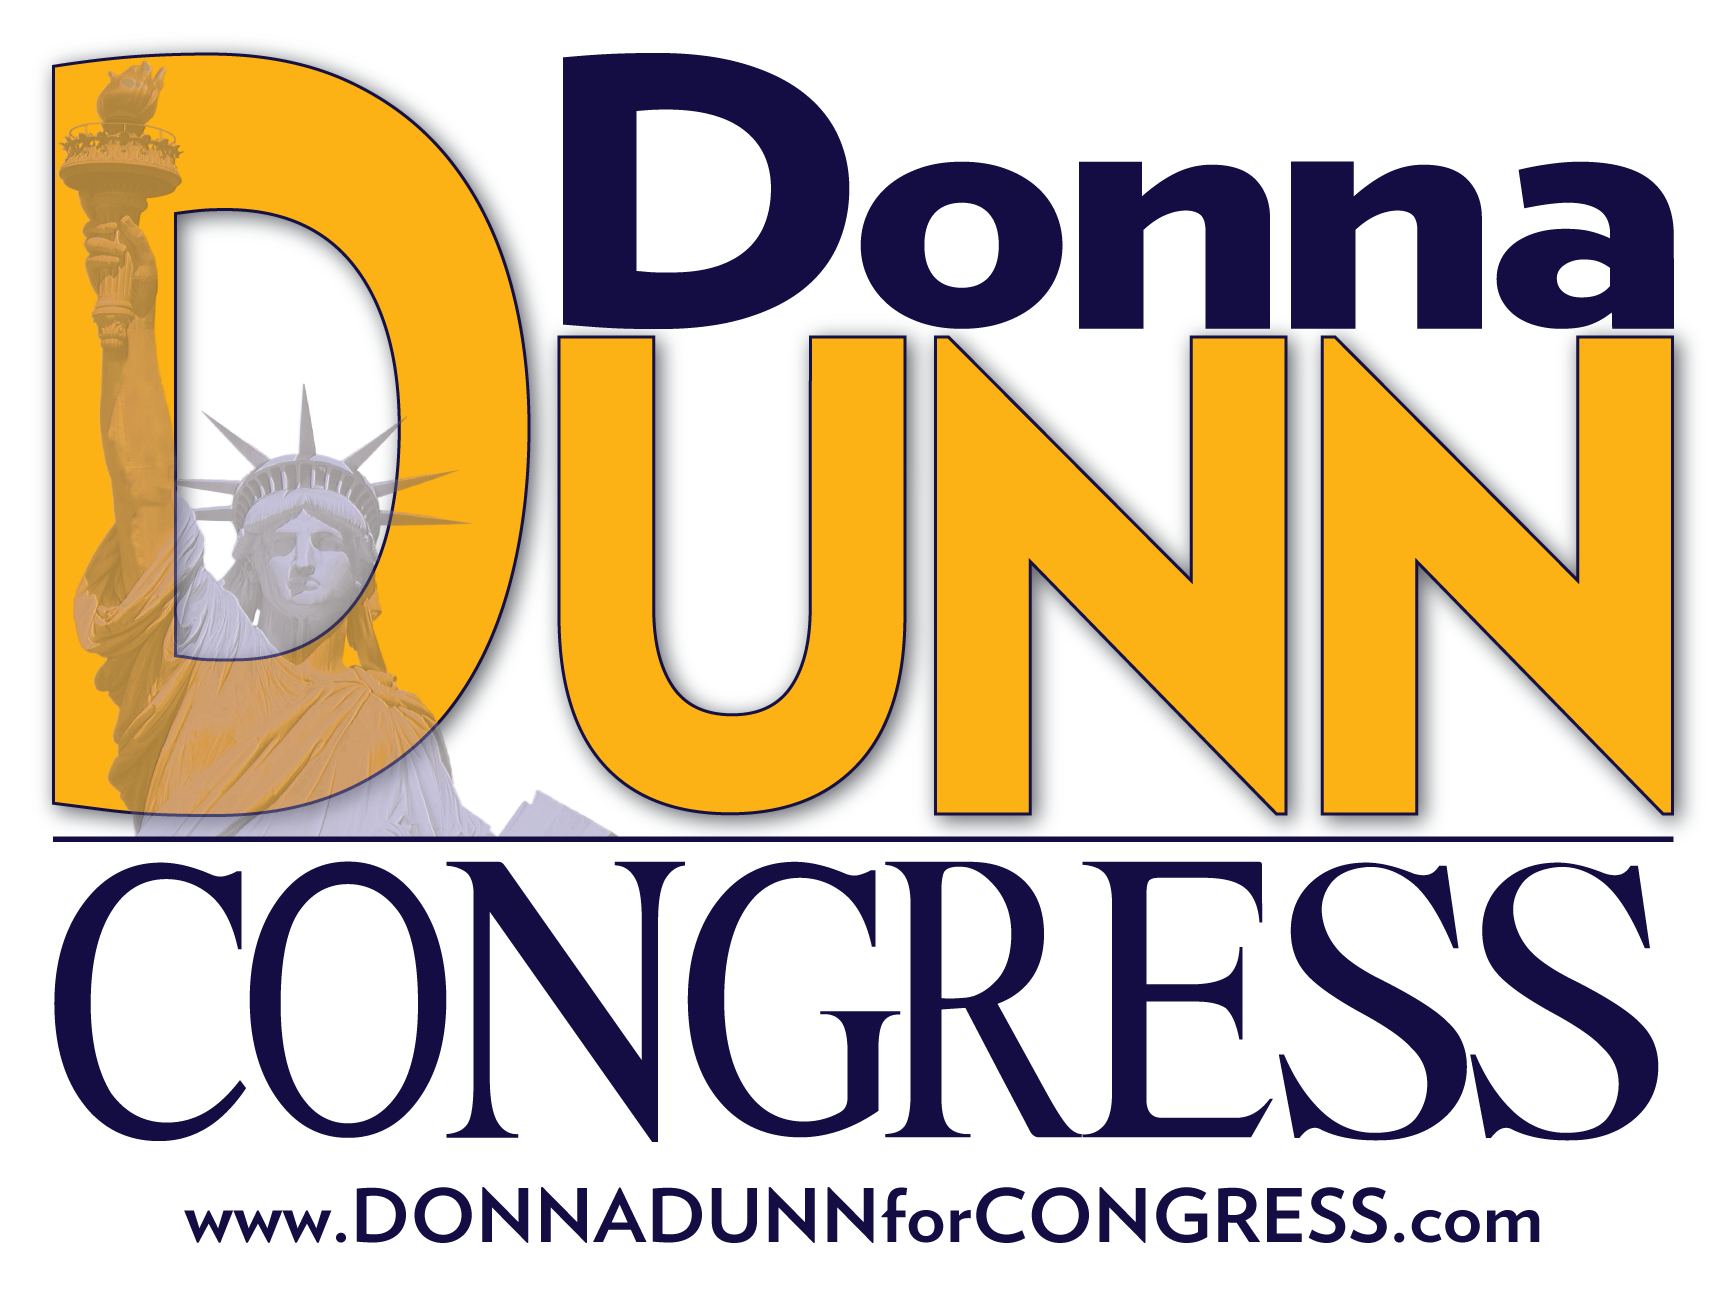 Donna Dunn for Congress